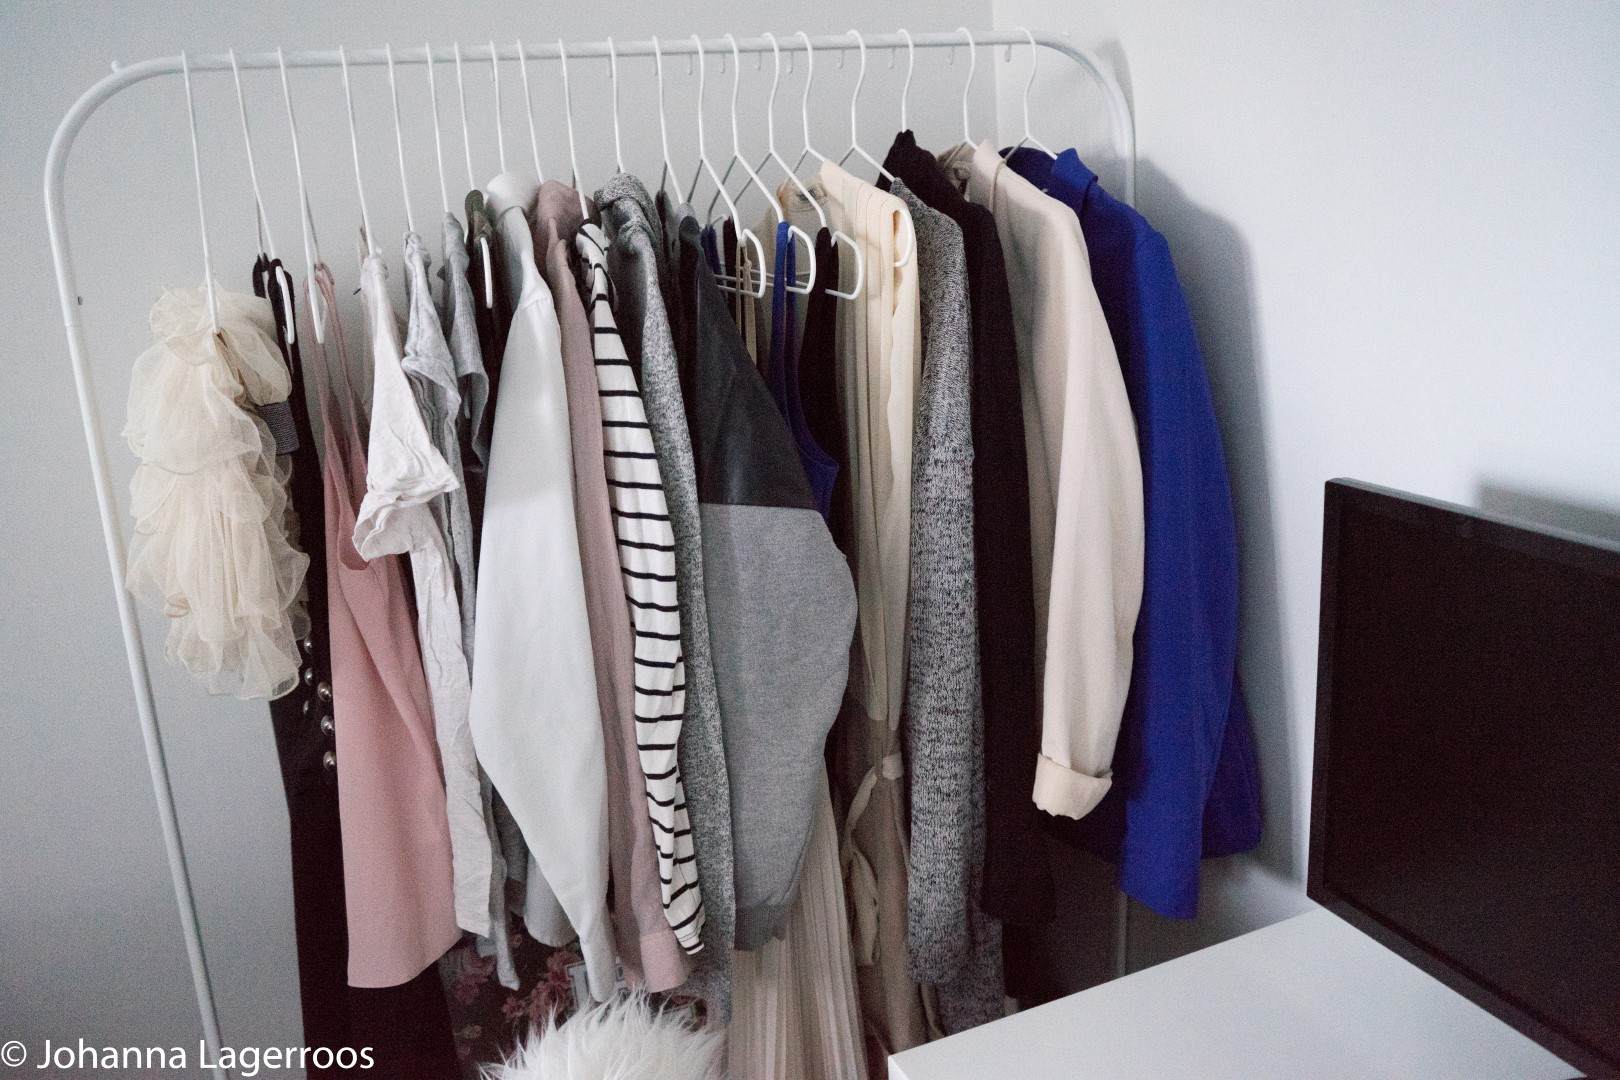 capsule wardrobe items